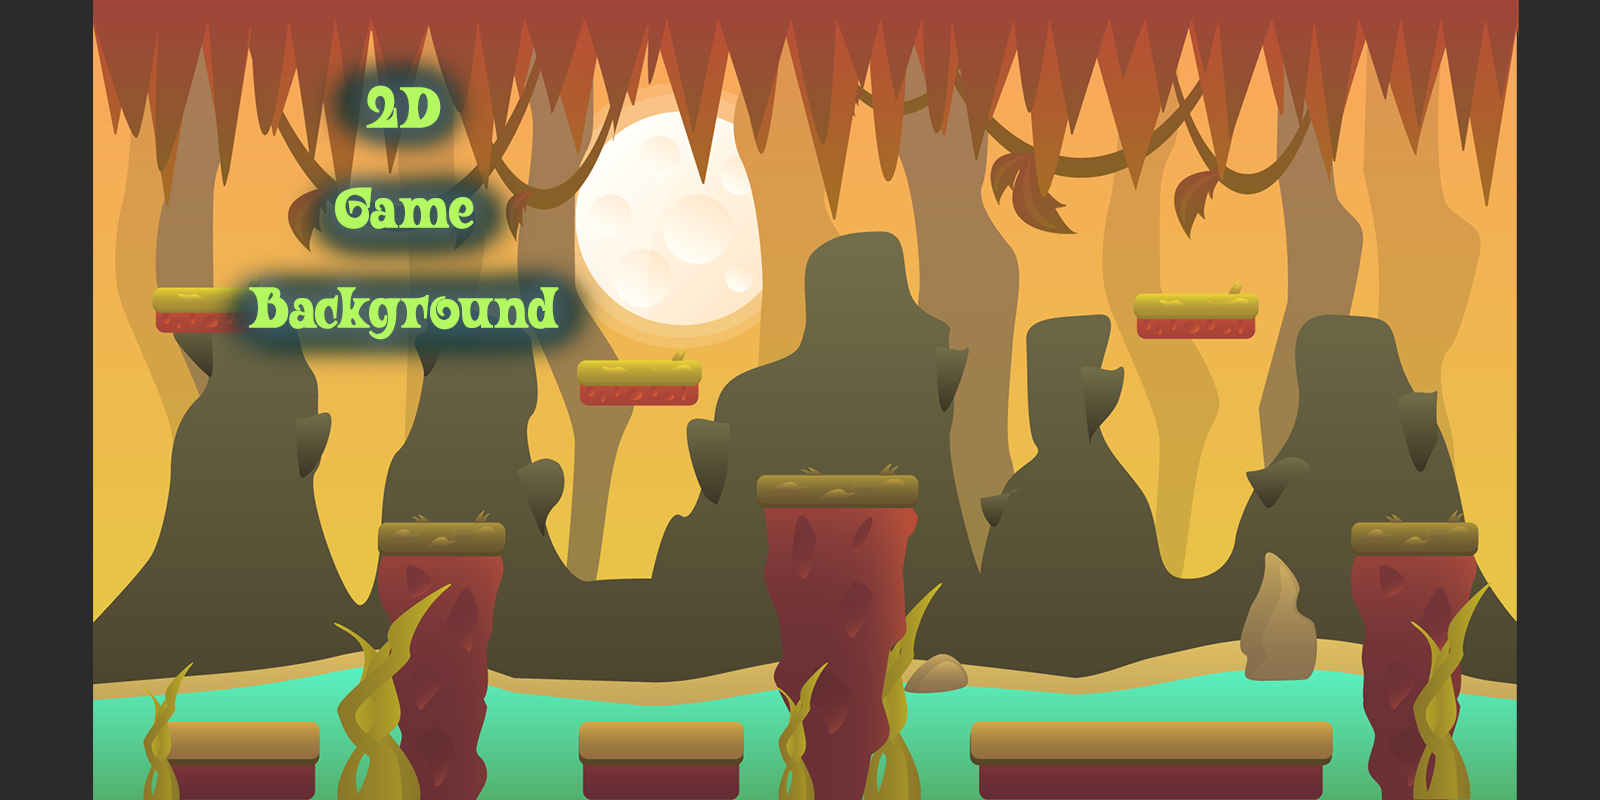 FREE 2D VECTOR GAME BACKGROUND 2 by MarwaMJ